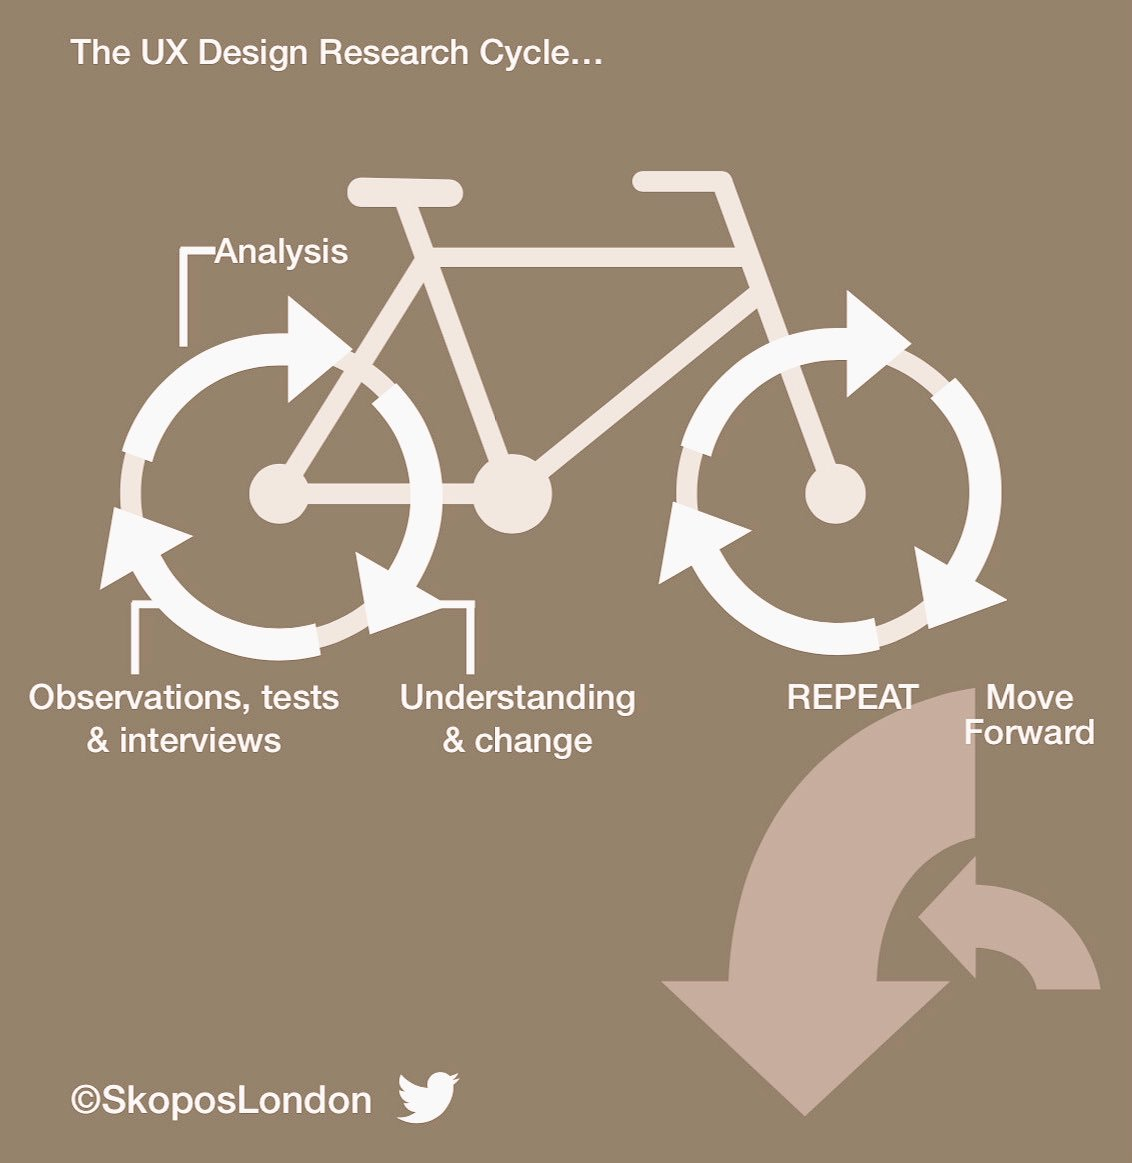 The User Experience &amp; the Research Cycle. Learn more in our Client Guide here  http:// skopos.london/pocket-guide/  &nbsp;   #UX #CX #MRX #BigMR<br>http://pic.twitter.com/QjQjRhJQtS